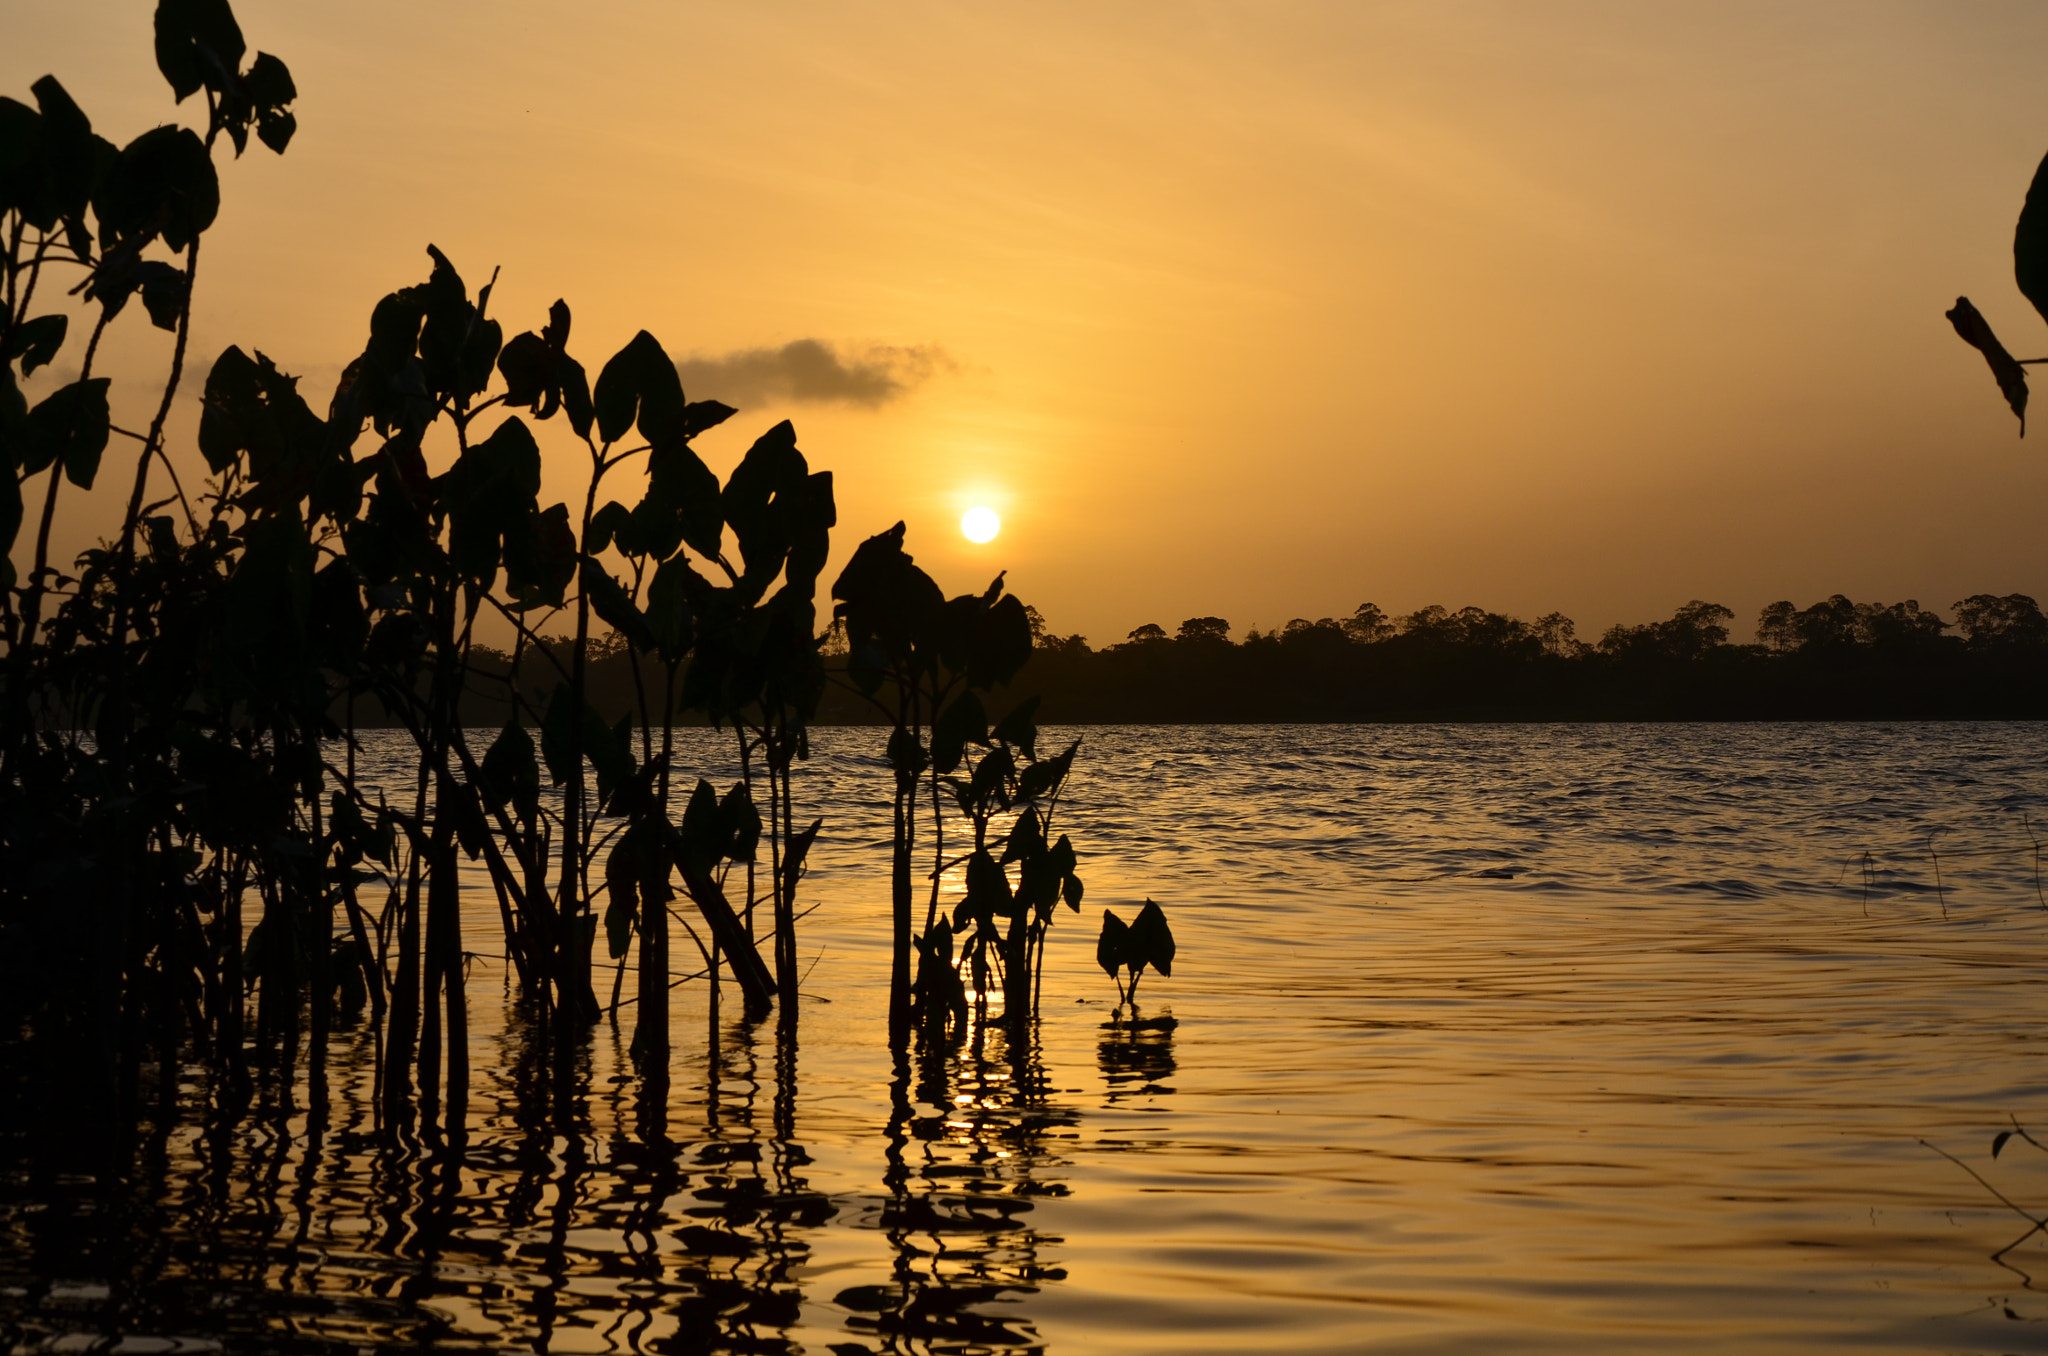 Photograph Demerara by James Deeges on 500px